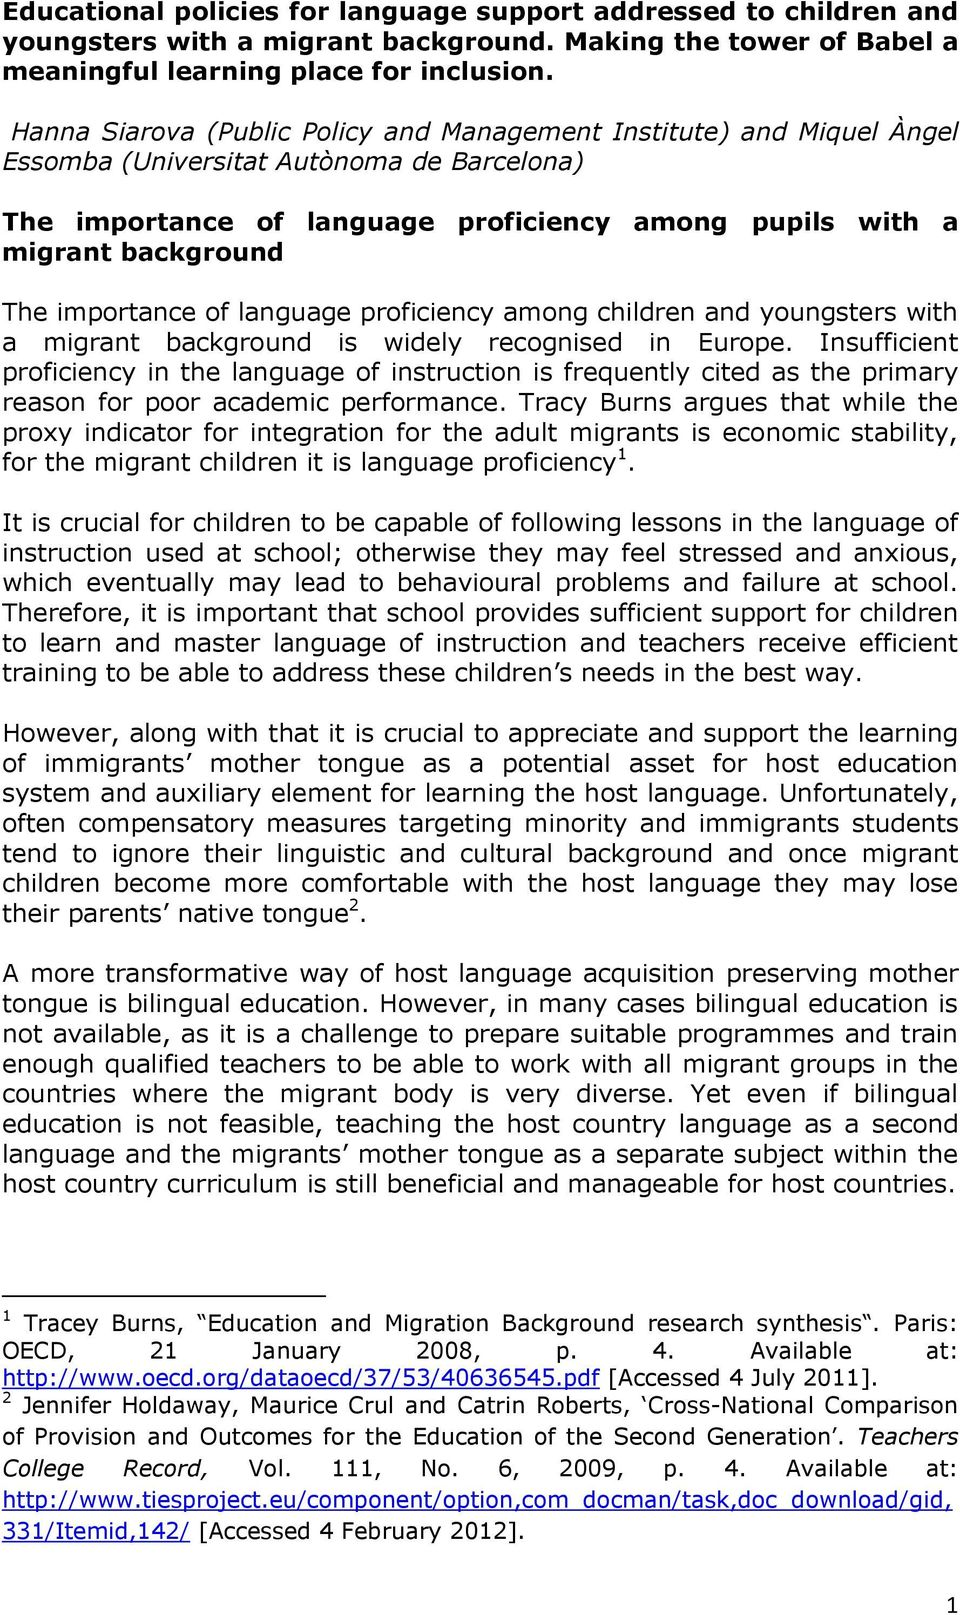 importance of language proficiency among children and youngsters with a migrant background is widely recognised in Europe.